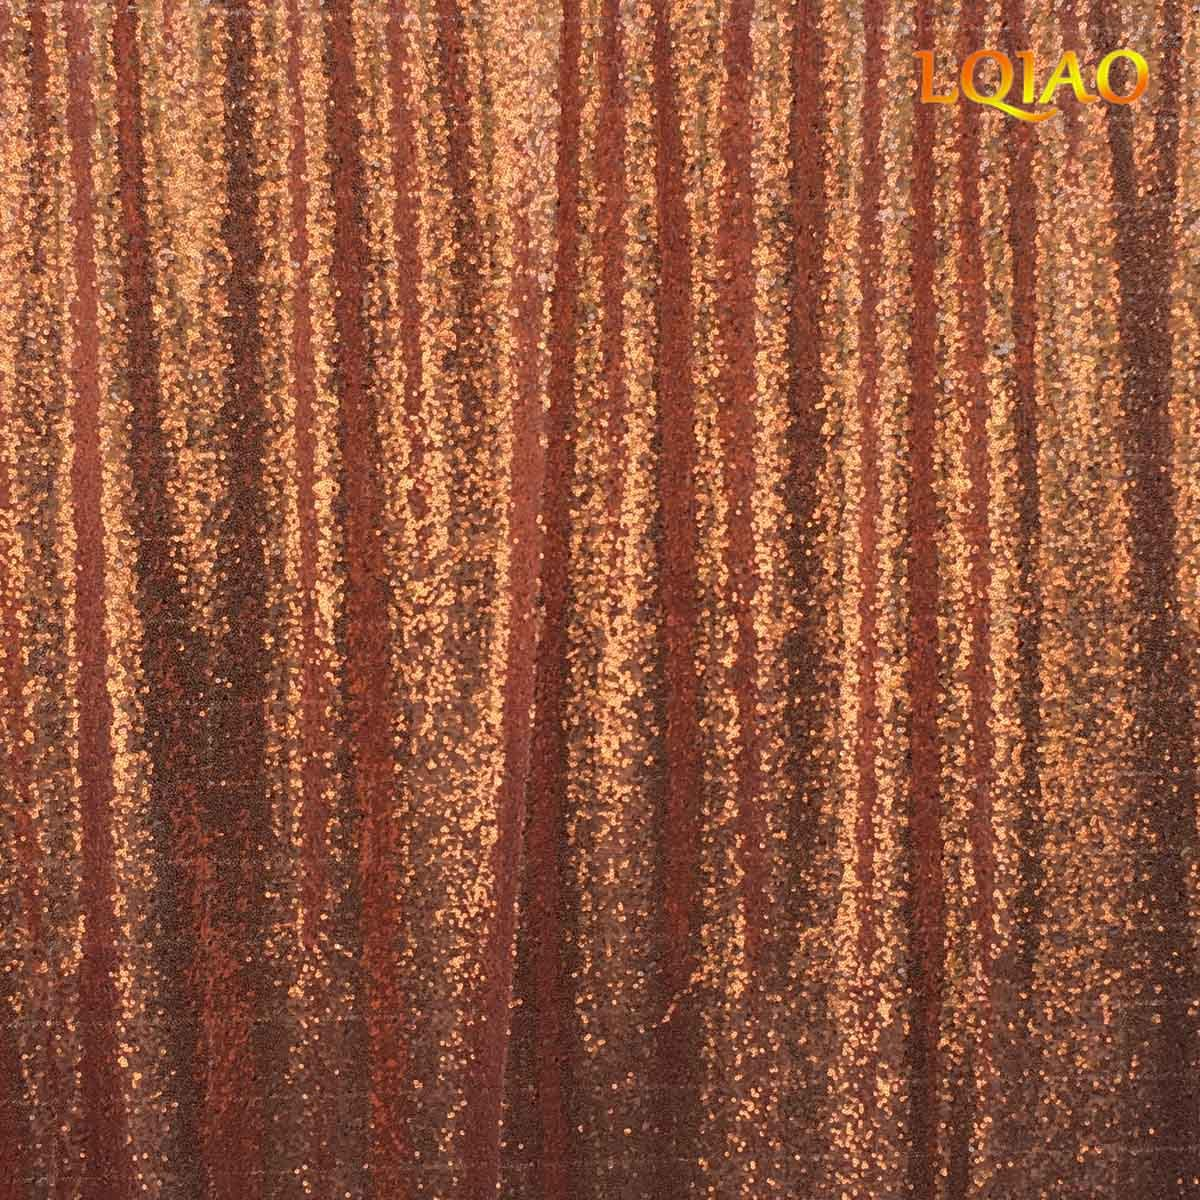 LQIAO 20x10ft-Sequin Backdrop Rose Gold Sequin Curtain Photography Booth Backdrop for Wedding/Party Decoration(600x300cm)